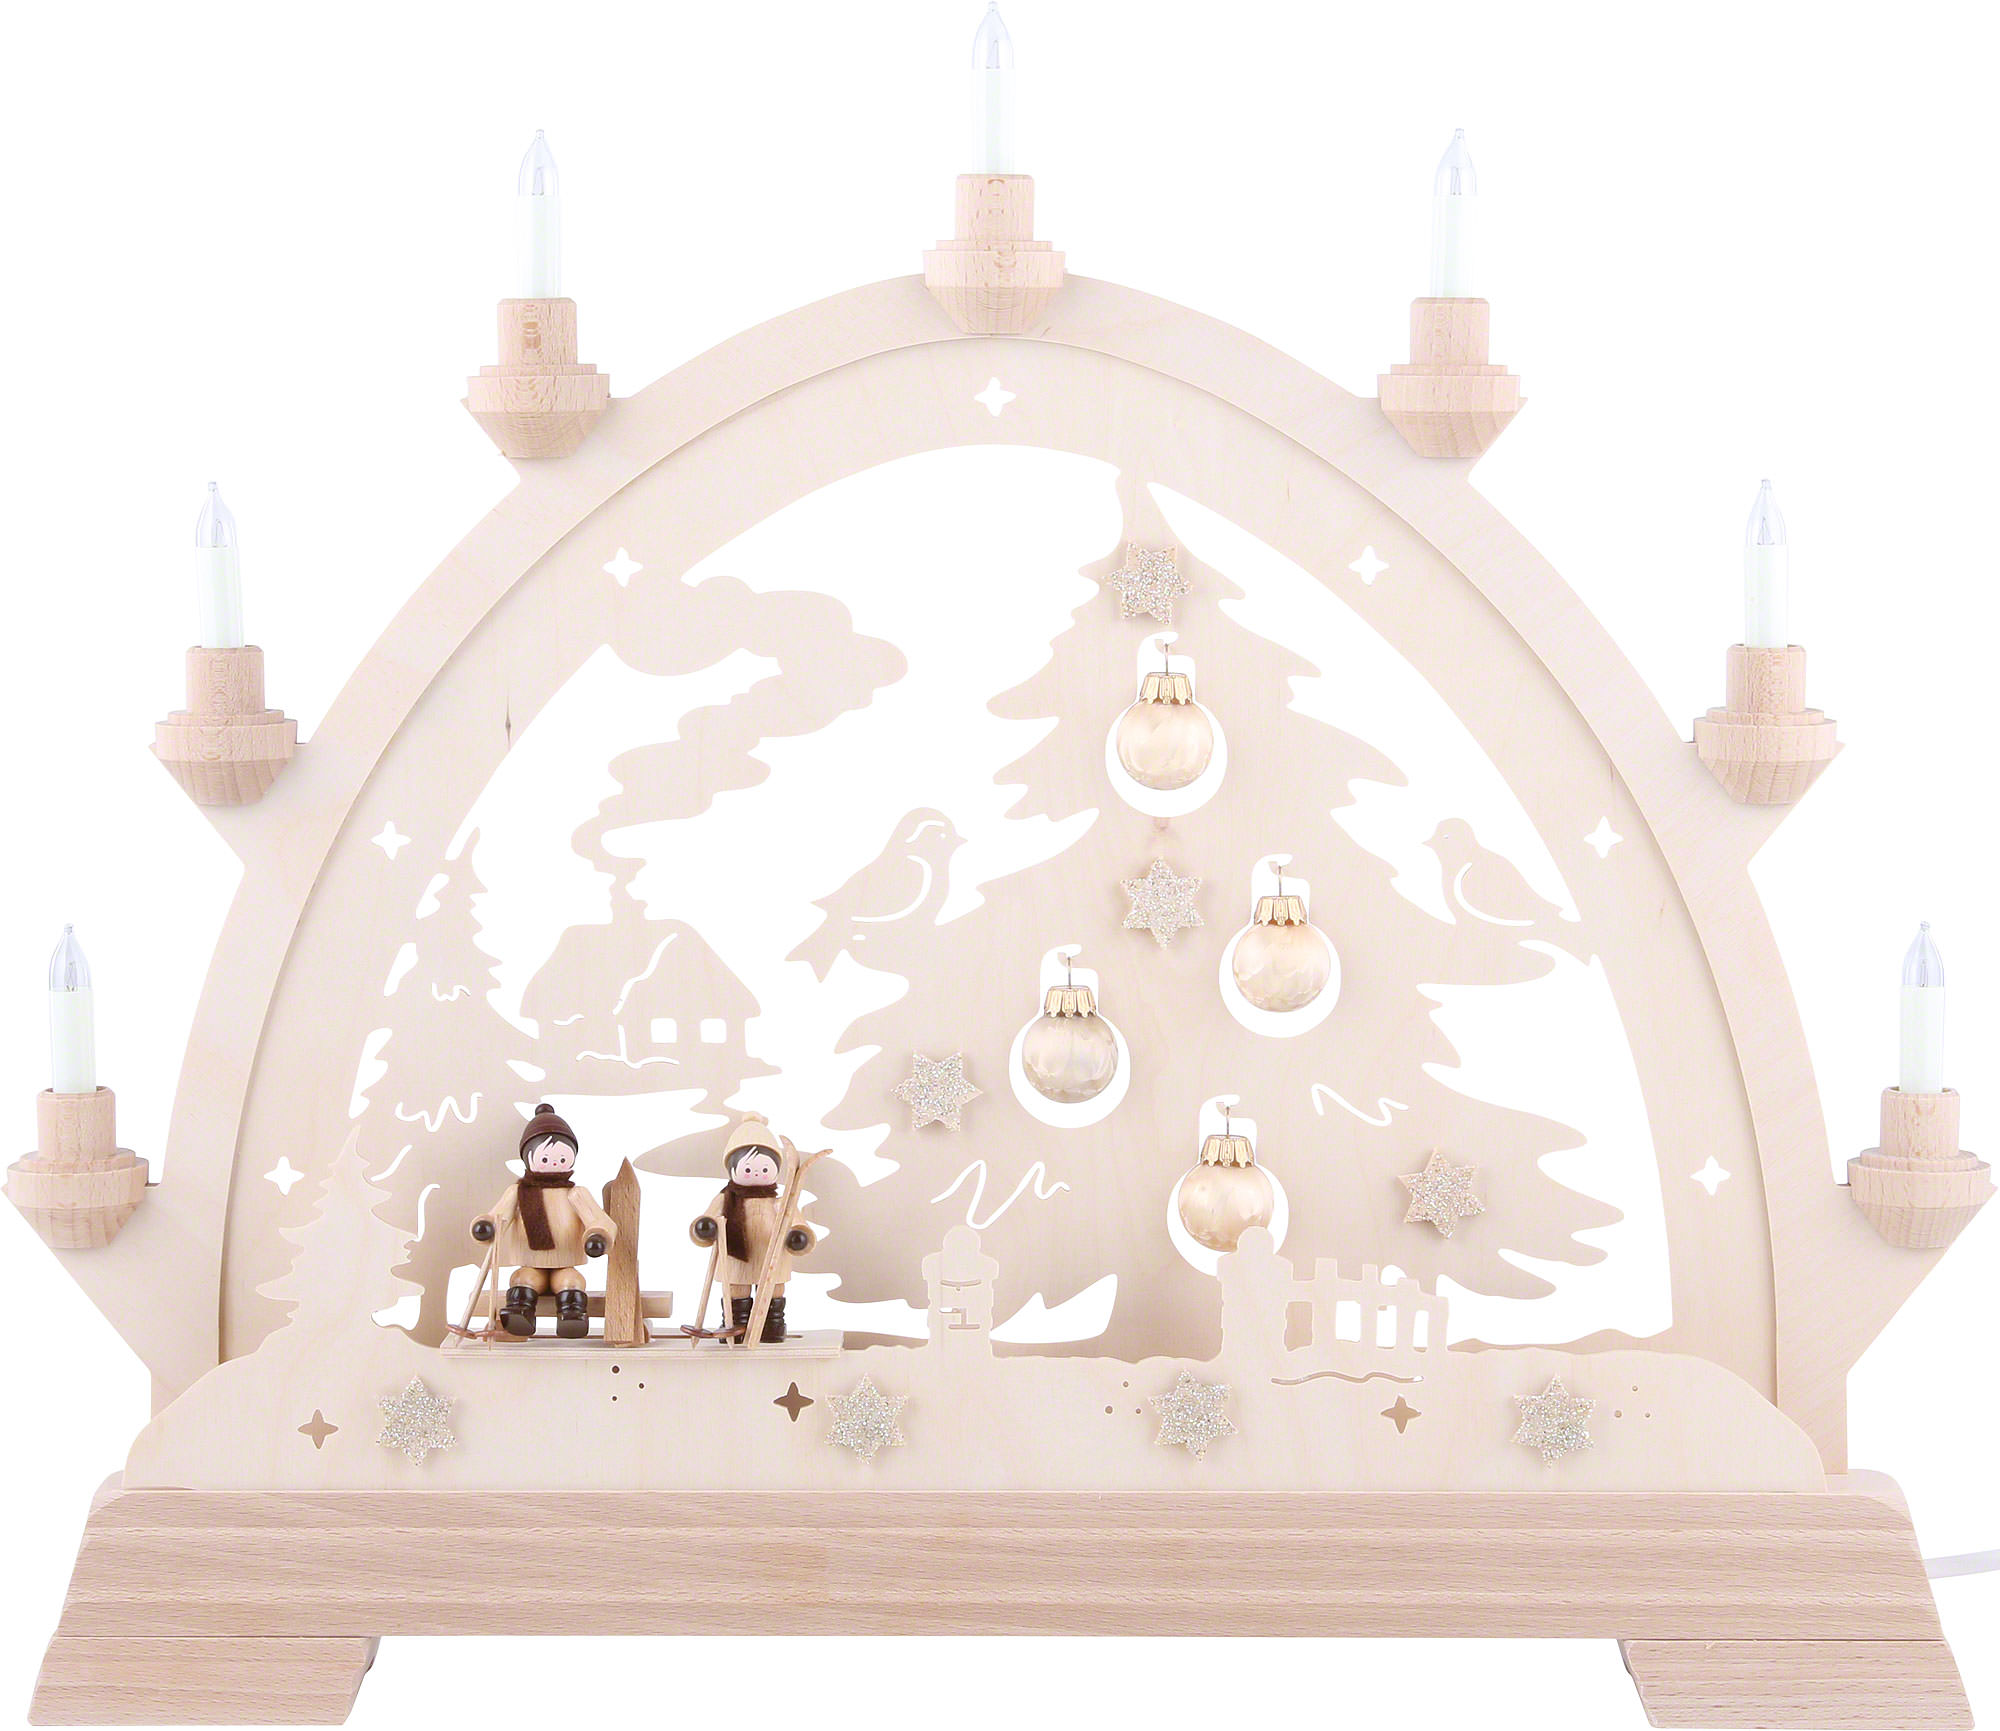 Candle arch christmas tree 40 43 cm 16 16in by kwo for Arch candle christmas decoration